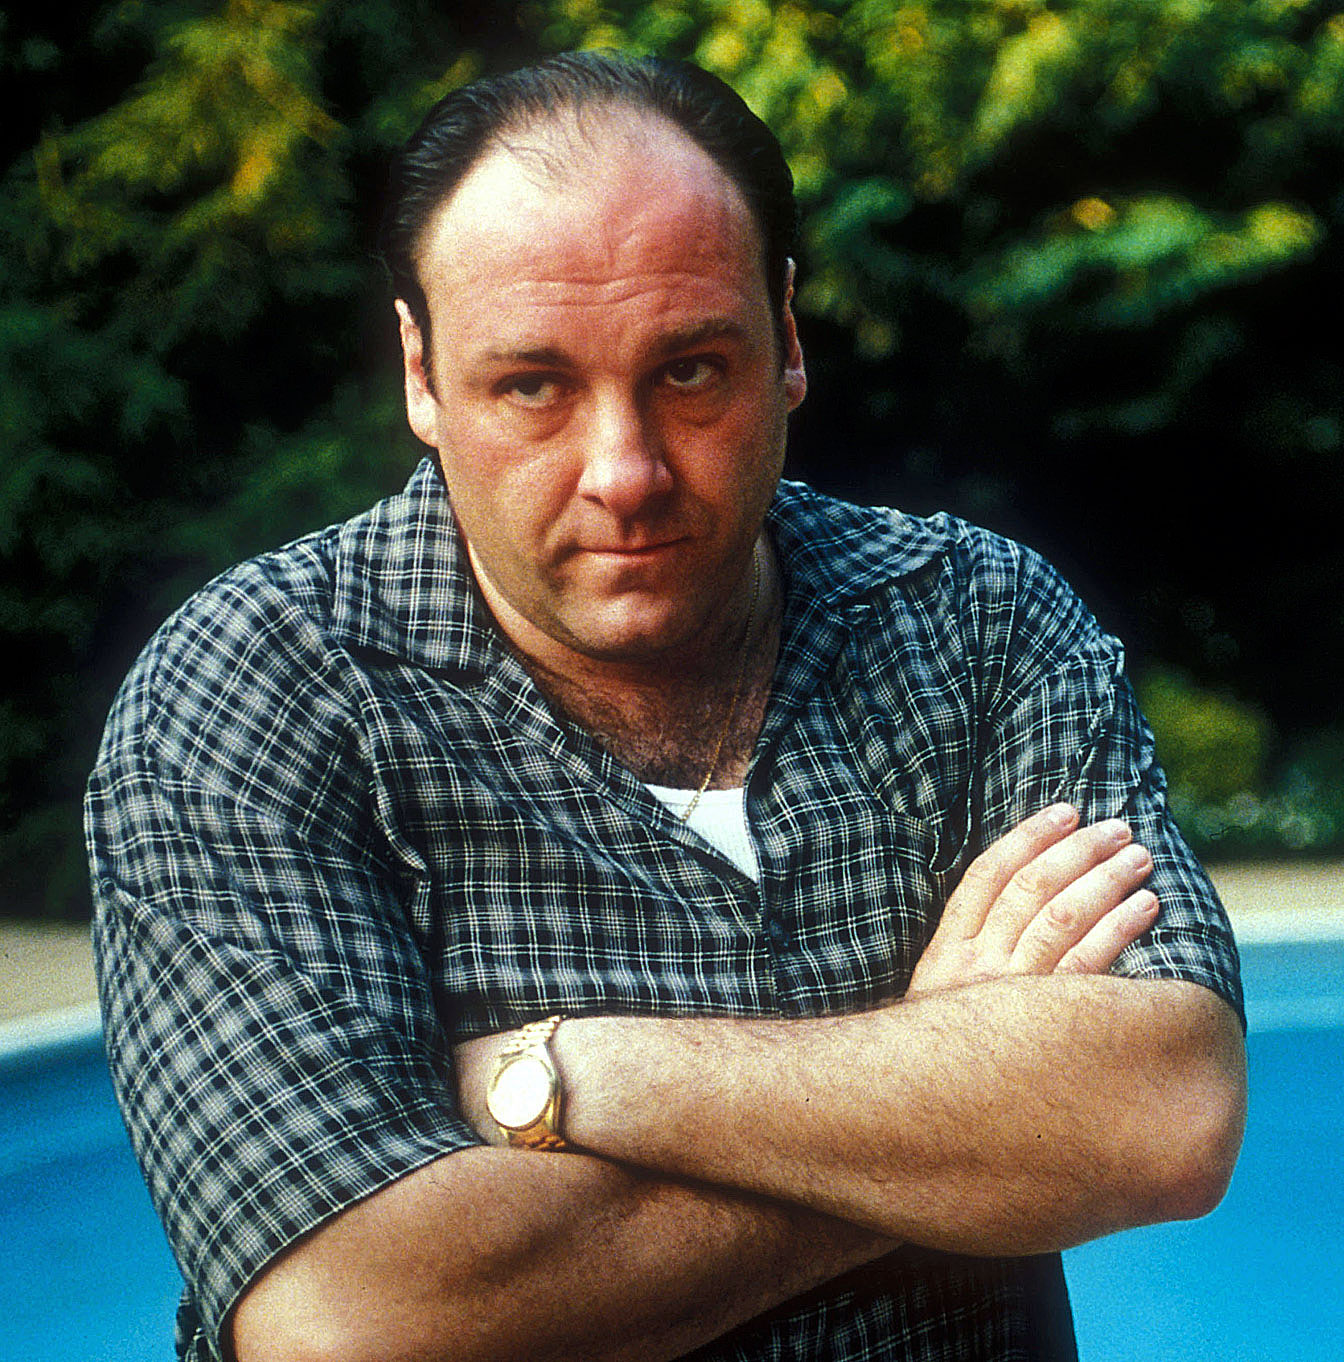 James Gandolfini Was Arguably One Of The Greatest Characters Actors In History I Remember After Years Enjoying Watching Sopranos Hearing